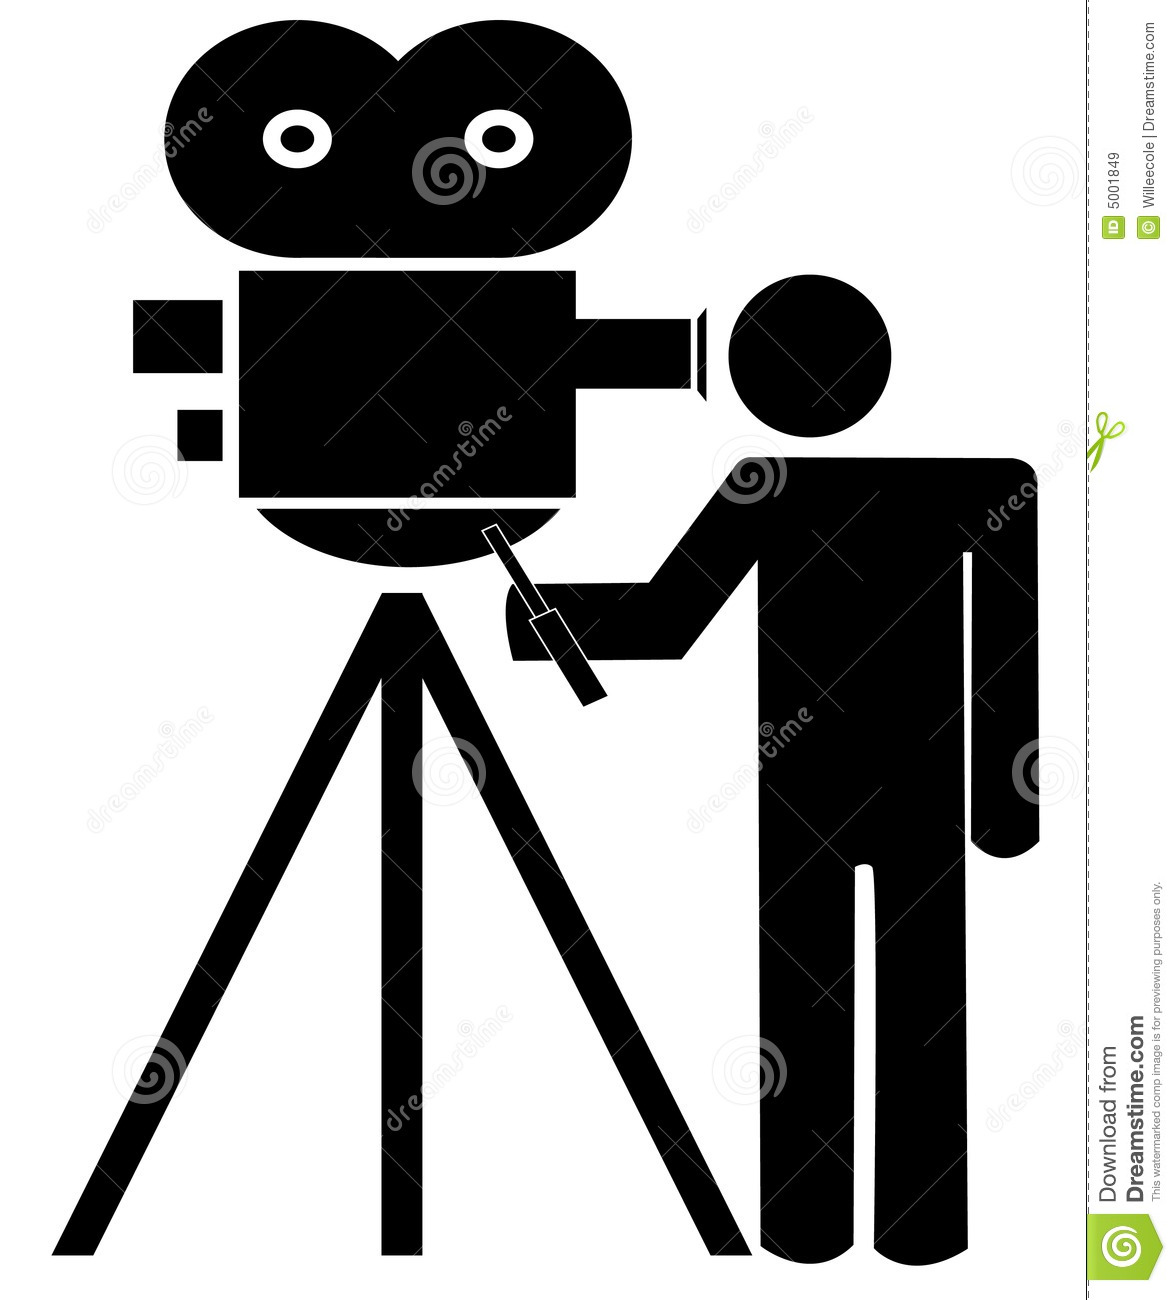 cameraman royalty free stock images image 5001849 vintage movie camera clipart vintage movie camera clipart